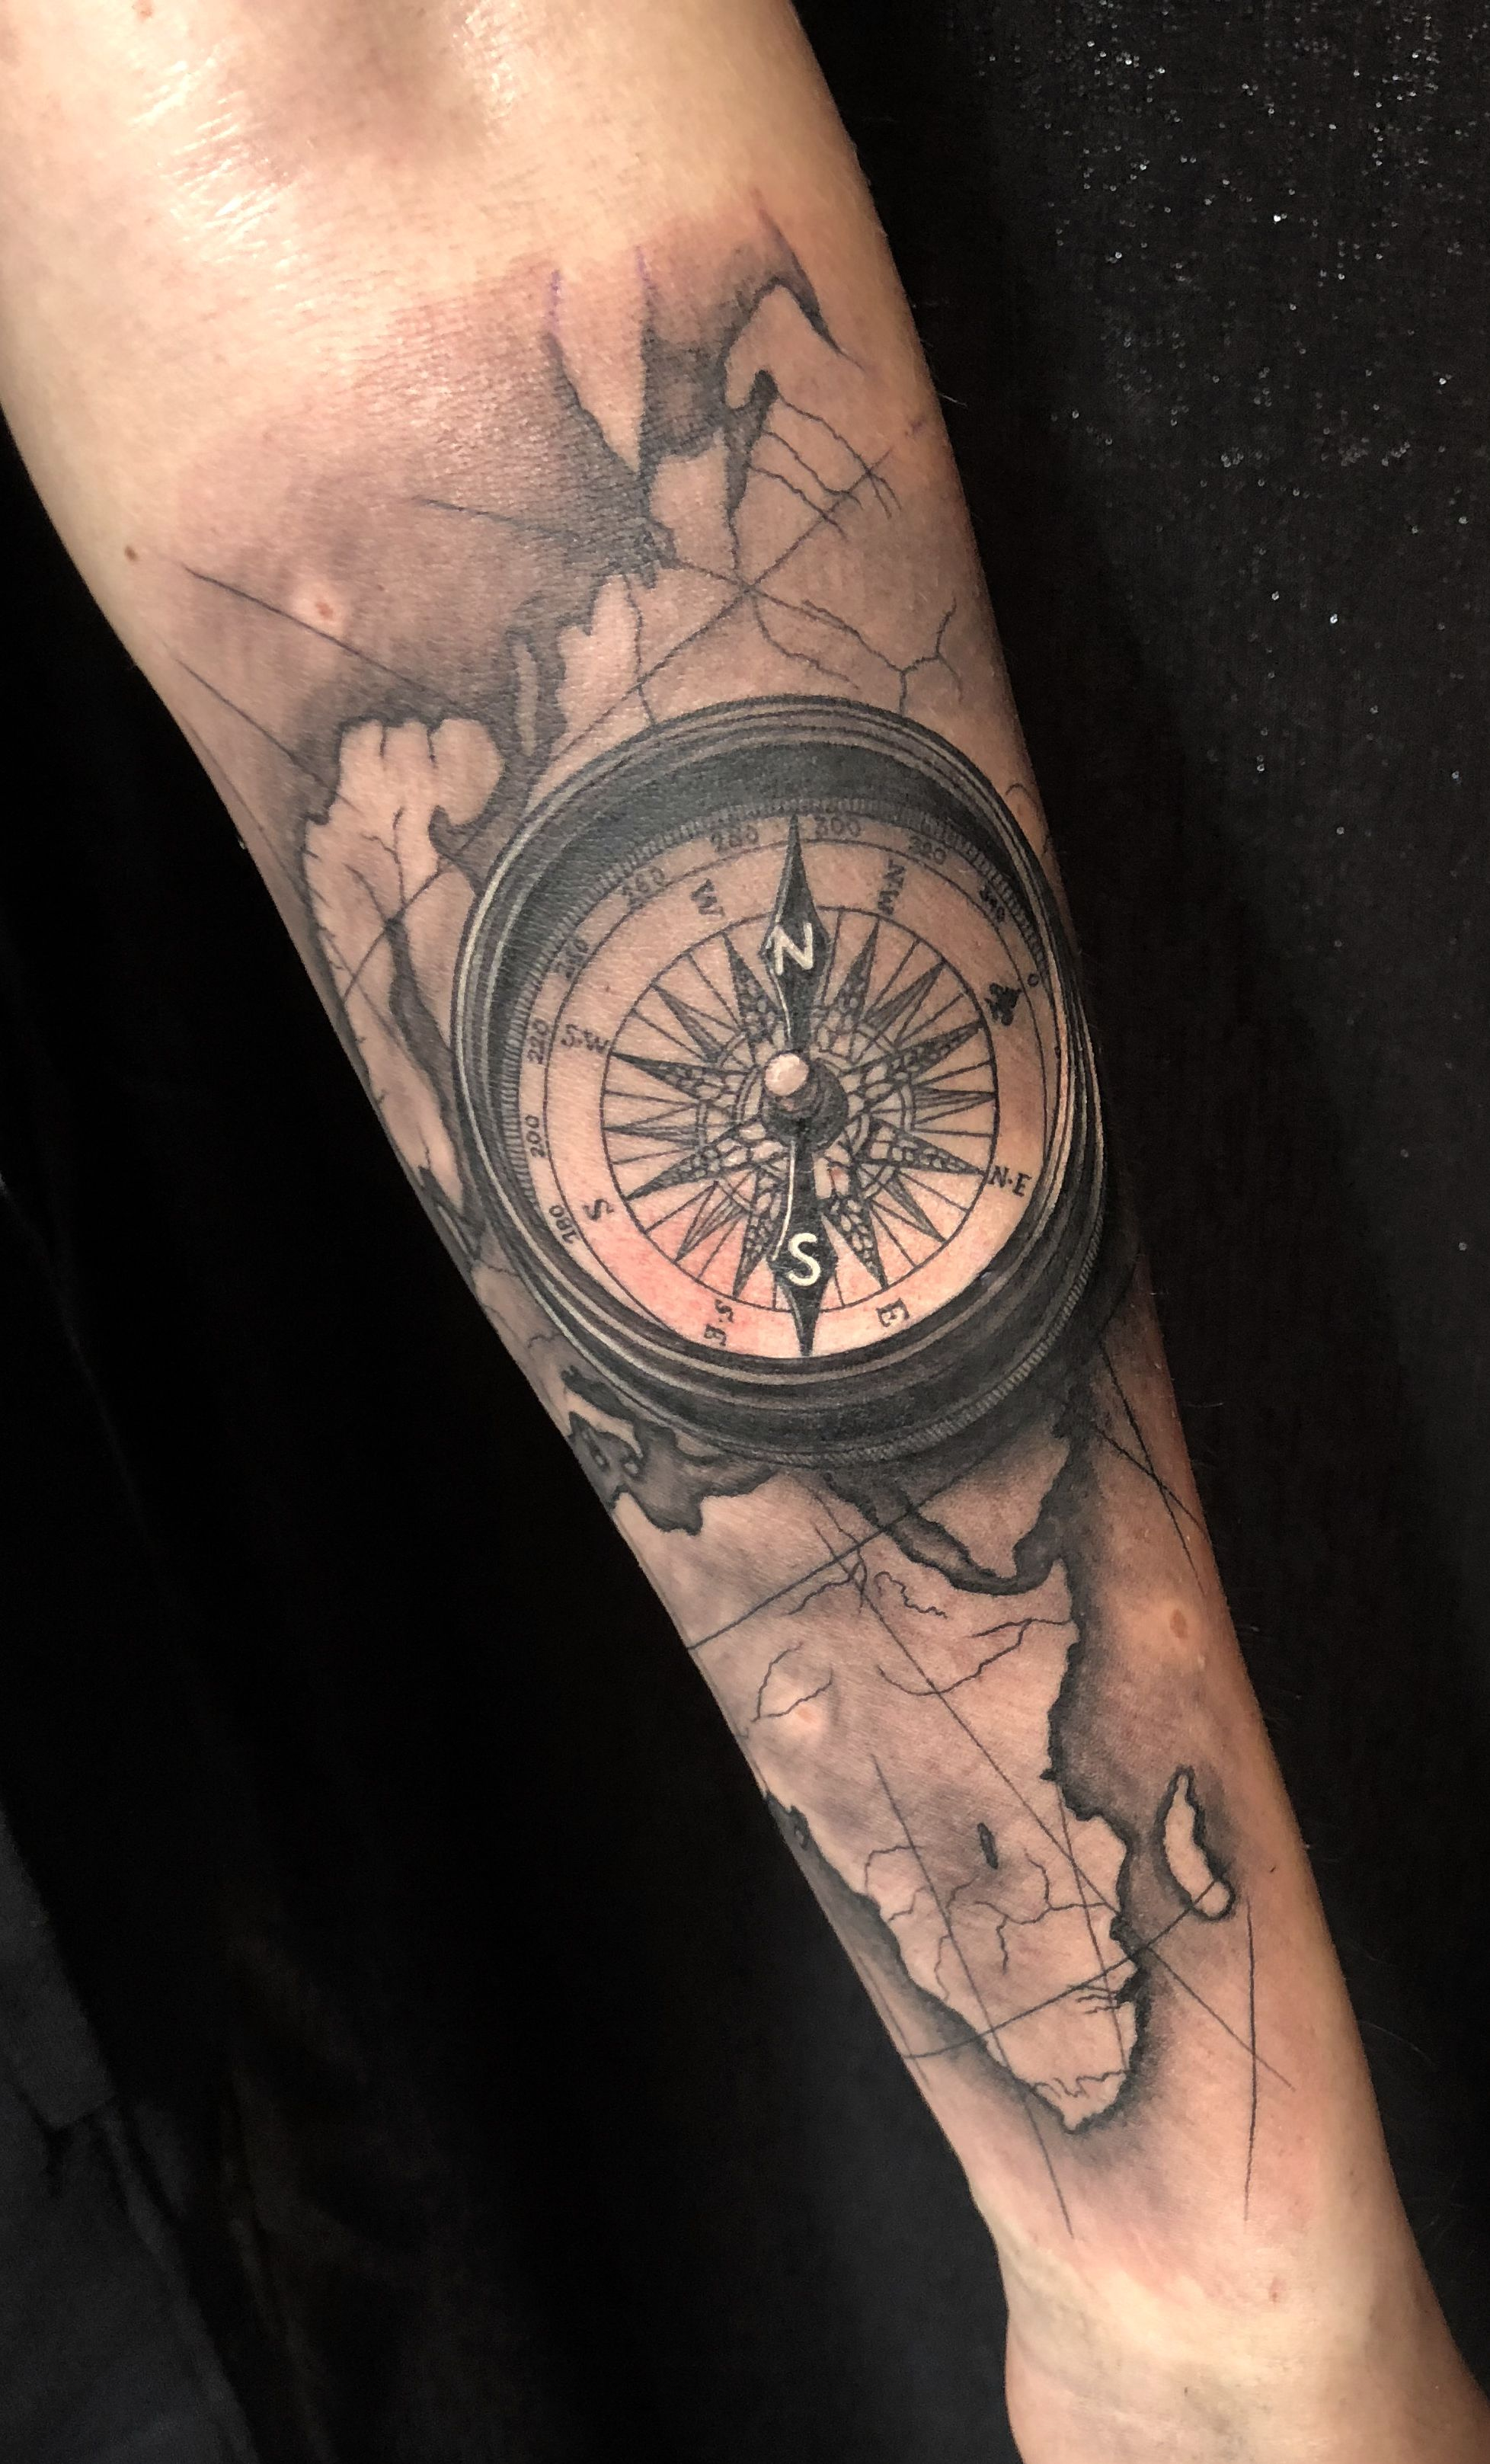 Photo of @westend_tattoo #westendtattooandpiercing #tattoo #arm tattoo #compass tattoo #m …